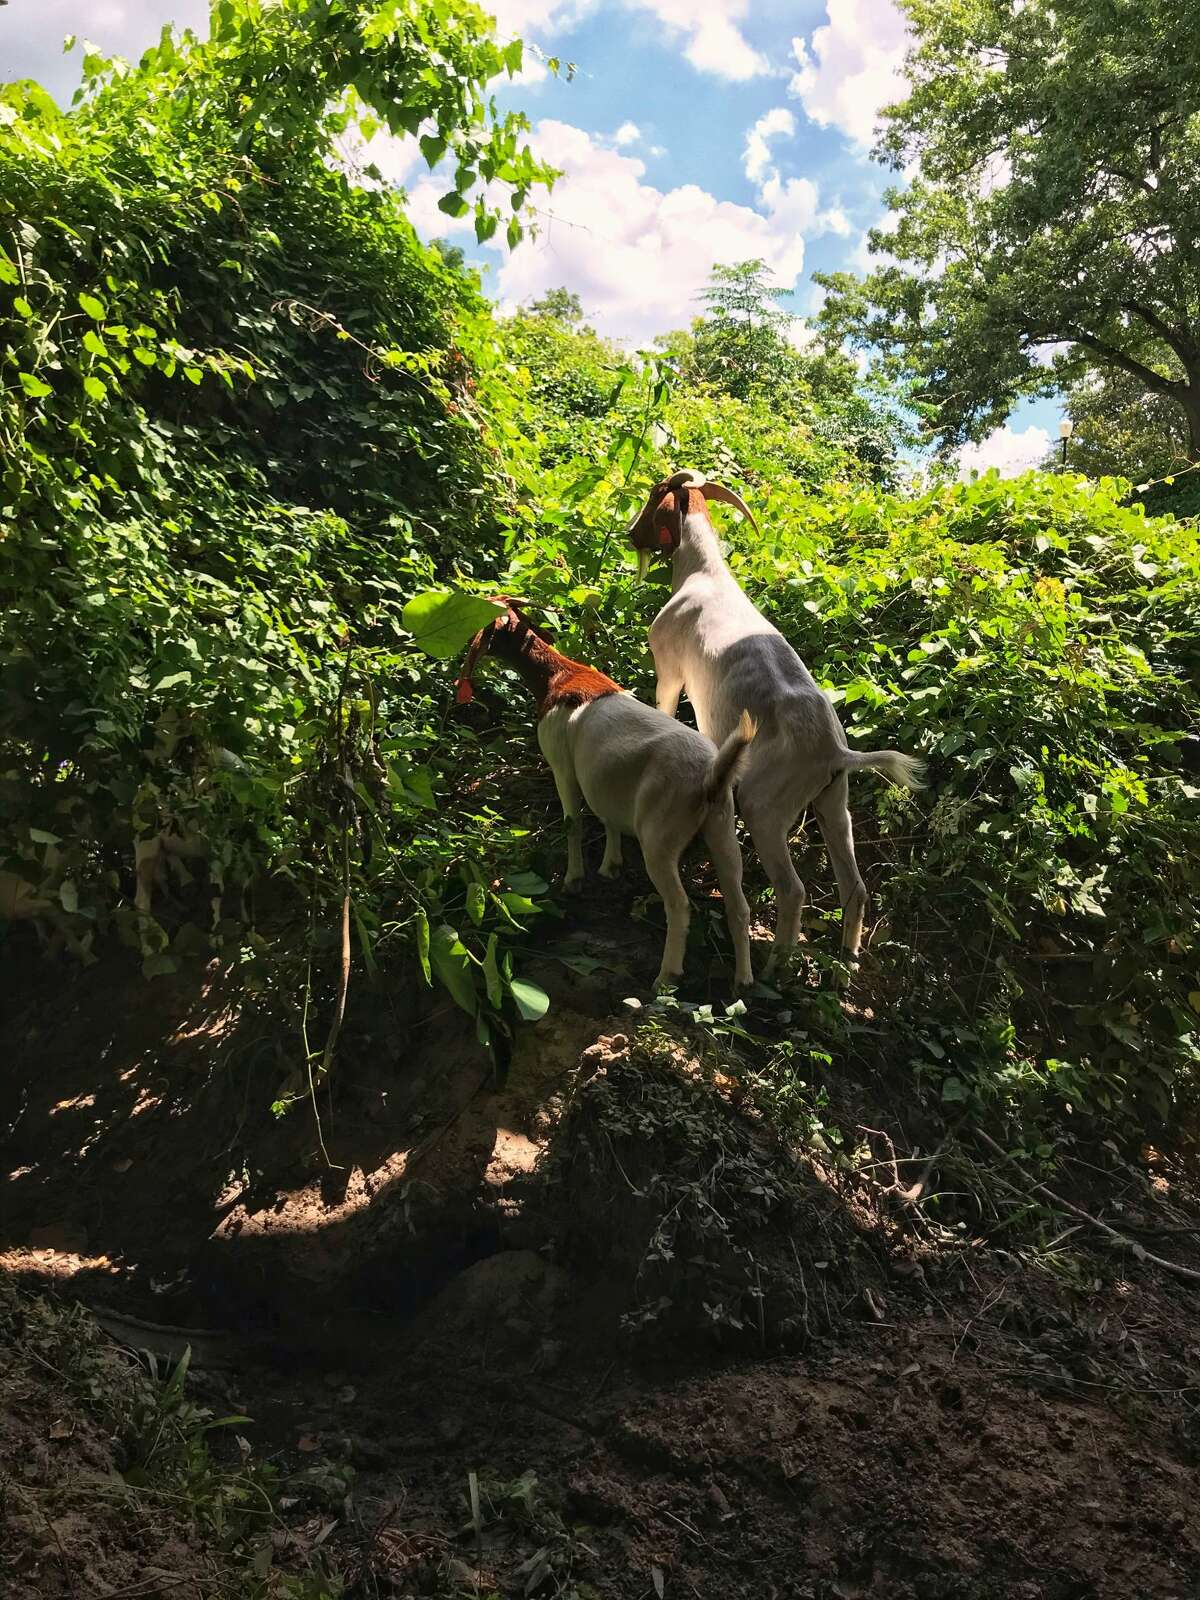 The Houston Arboretum & Nature Center welcomes 120 goats in October to assist with